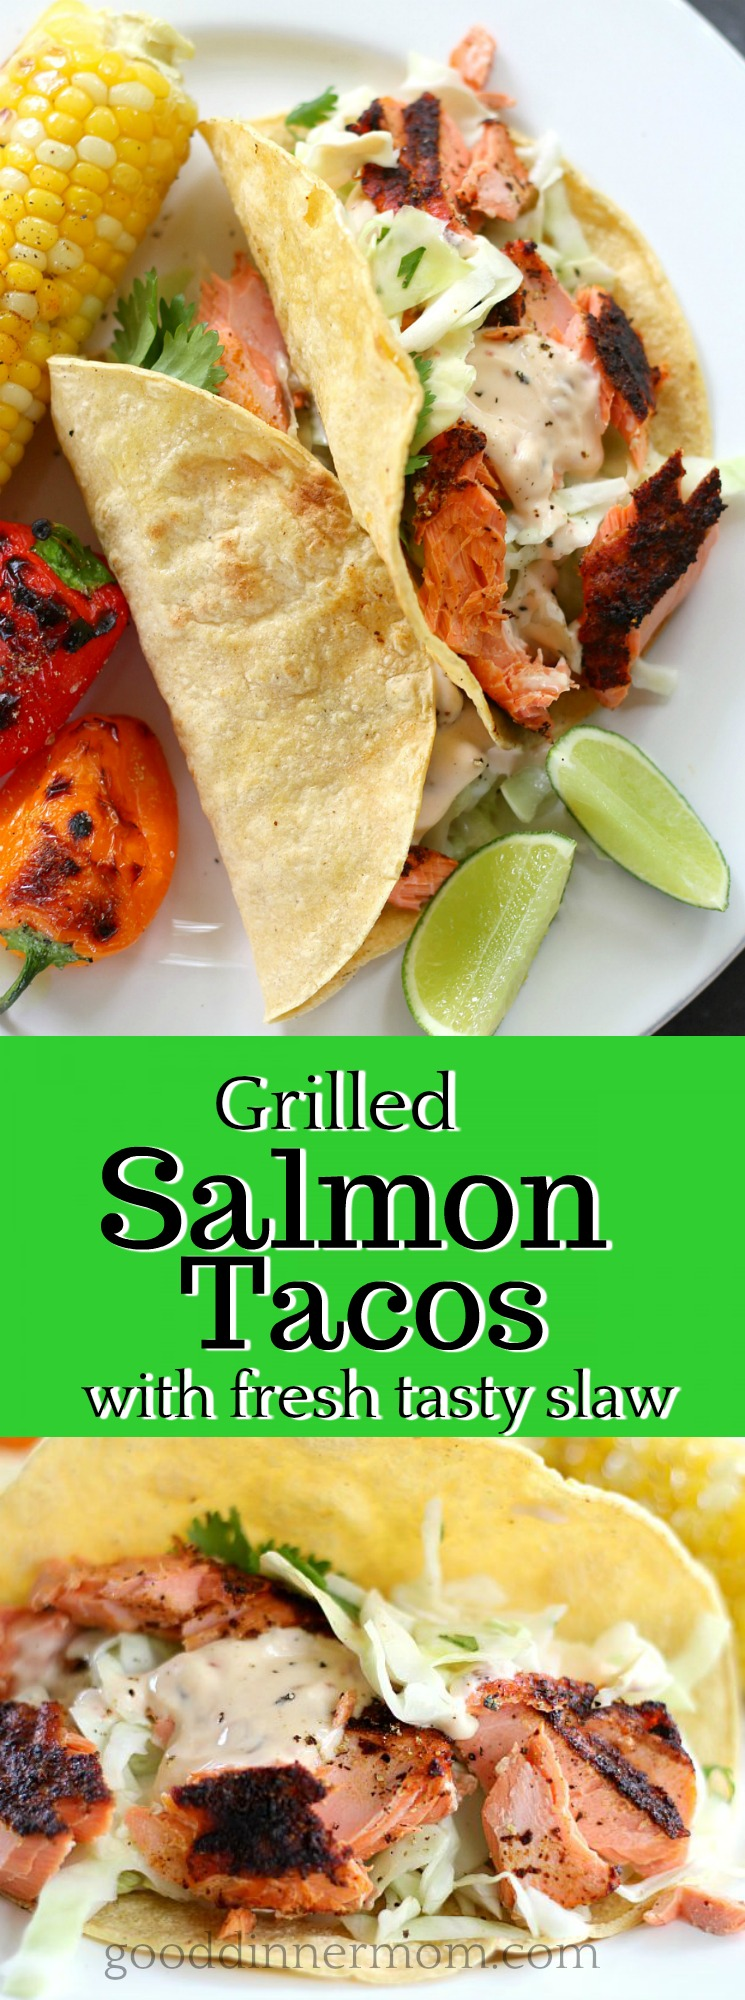 Grilled Salmon Tacos Good Dinner Mom